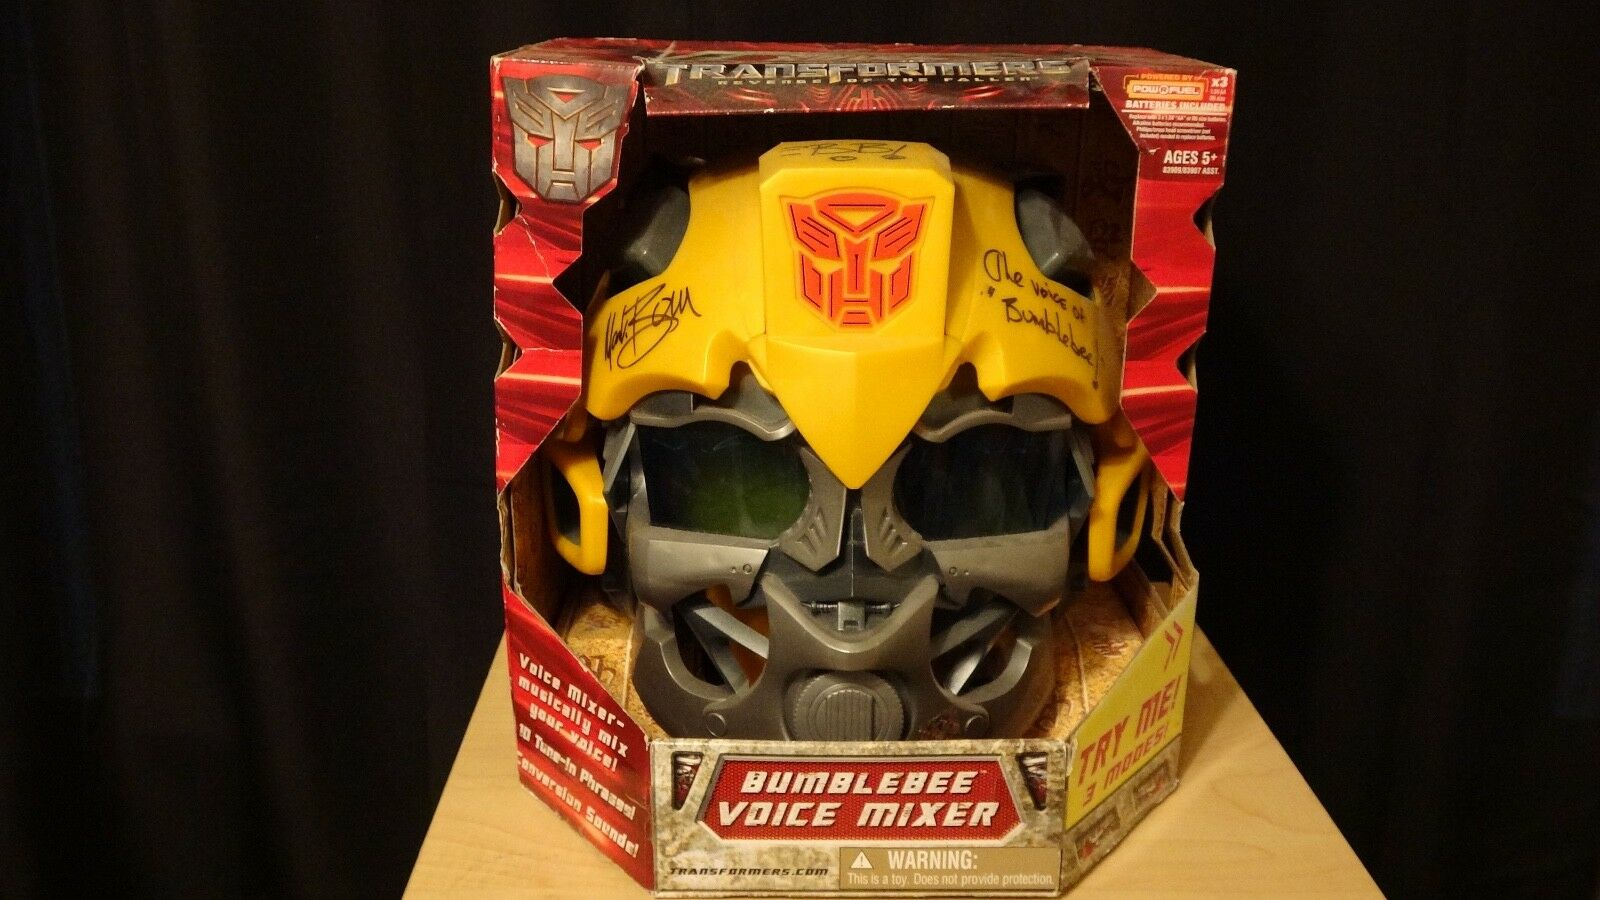 Hasbro Transformers Revenge of Fallen Bumblebee VoiceMixer Helmet SIGNED PROOF